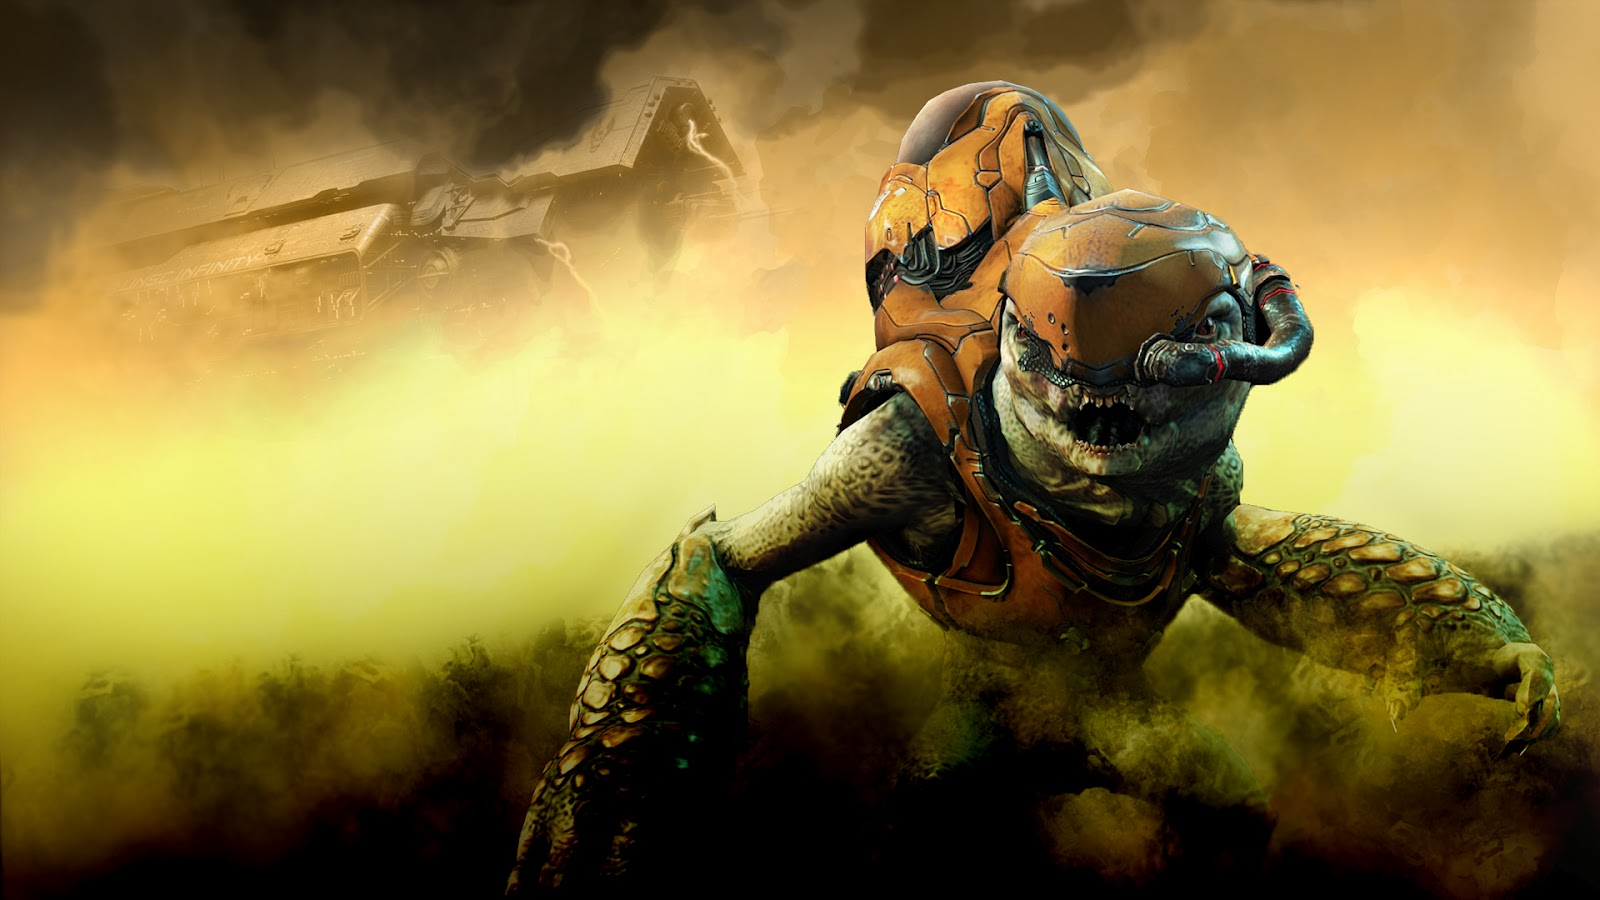 Cool Halo 4 Wallpapers 28756 Hd Wallpapers Background   HDesktopscom 1600x900